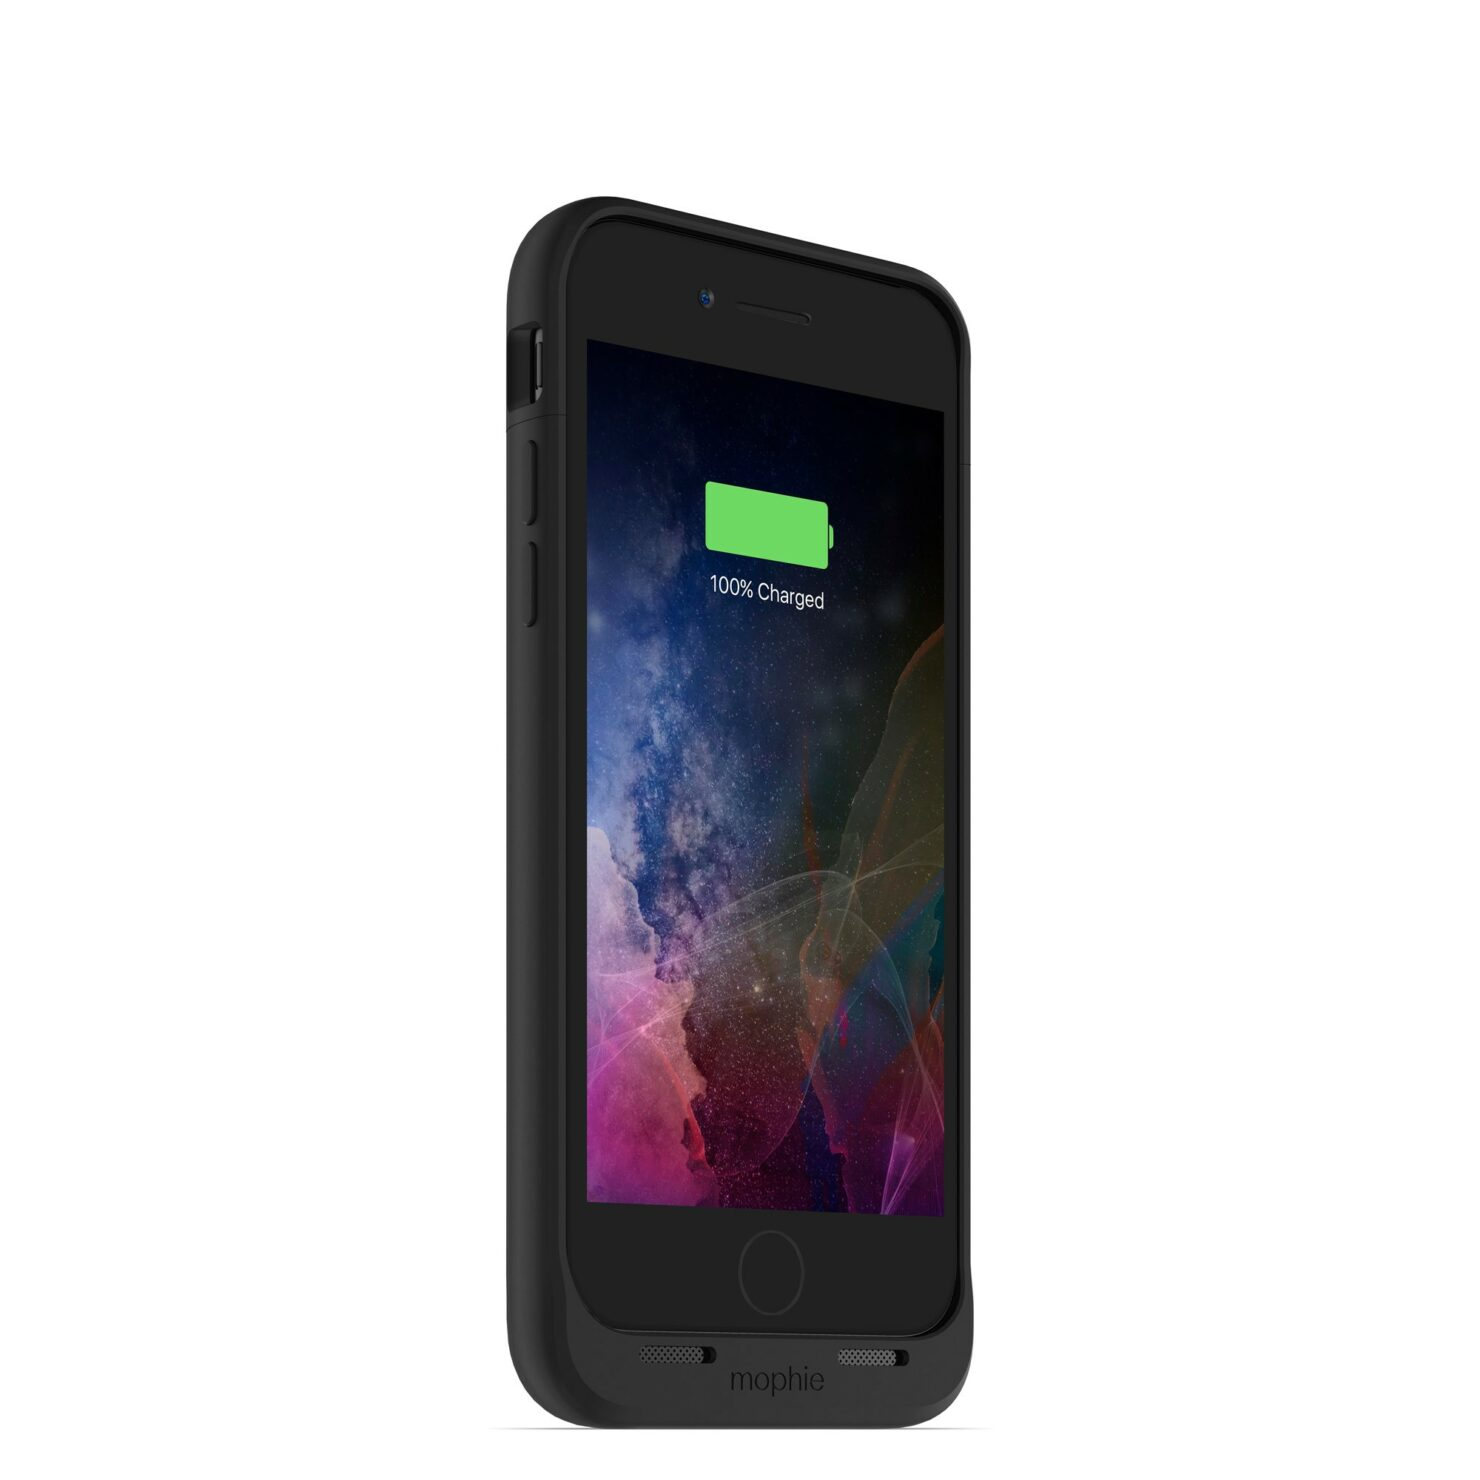 mophie-iphone-7-6